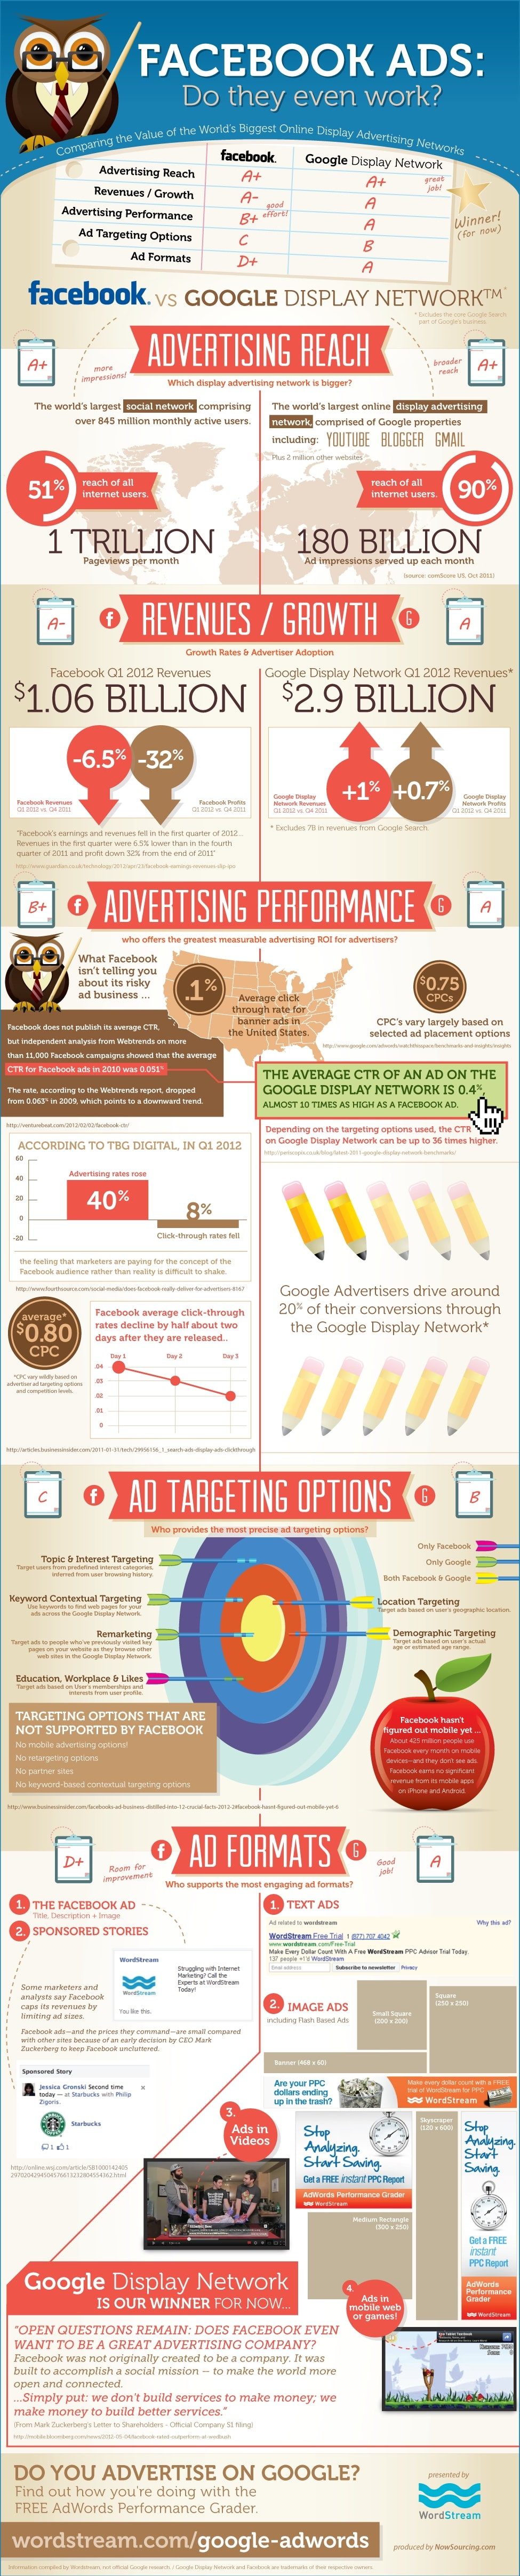 facebook-ad-performance-statistics-infographic